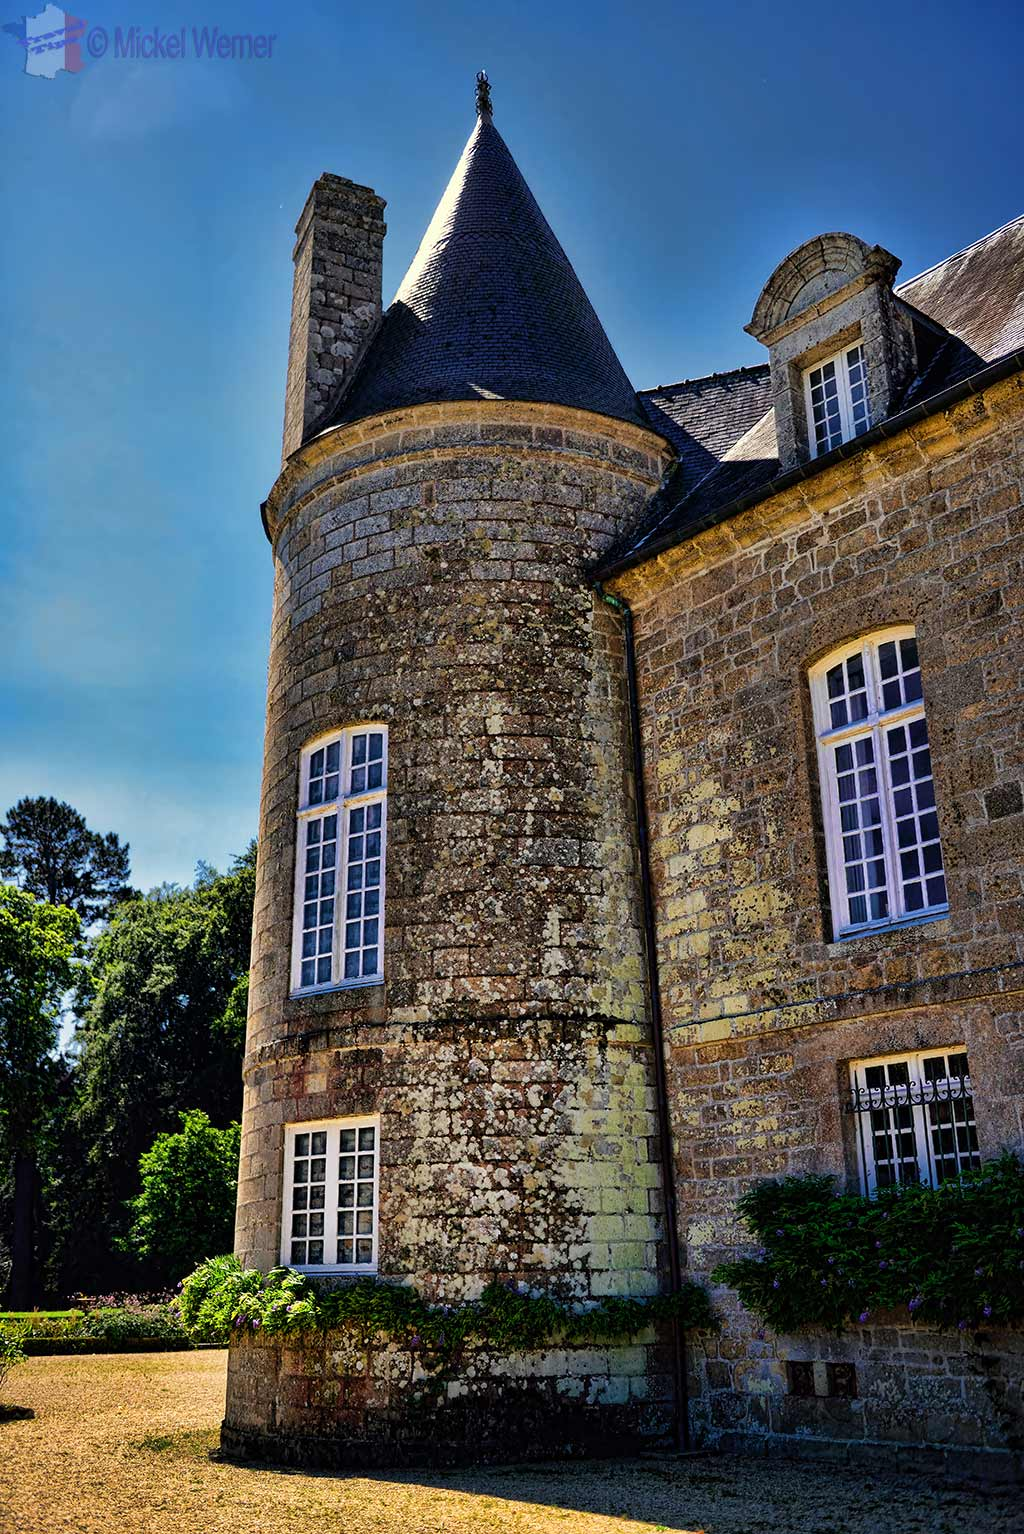 1 of 6 Towers of Castle Kergrist at Ploubezre, Brittany